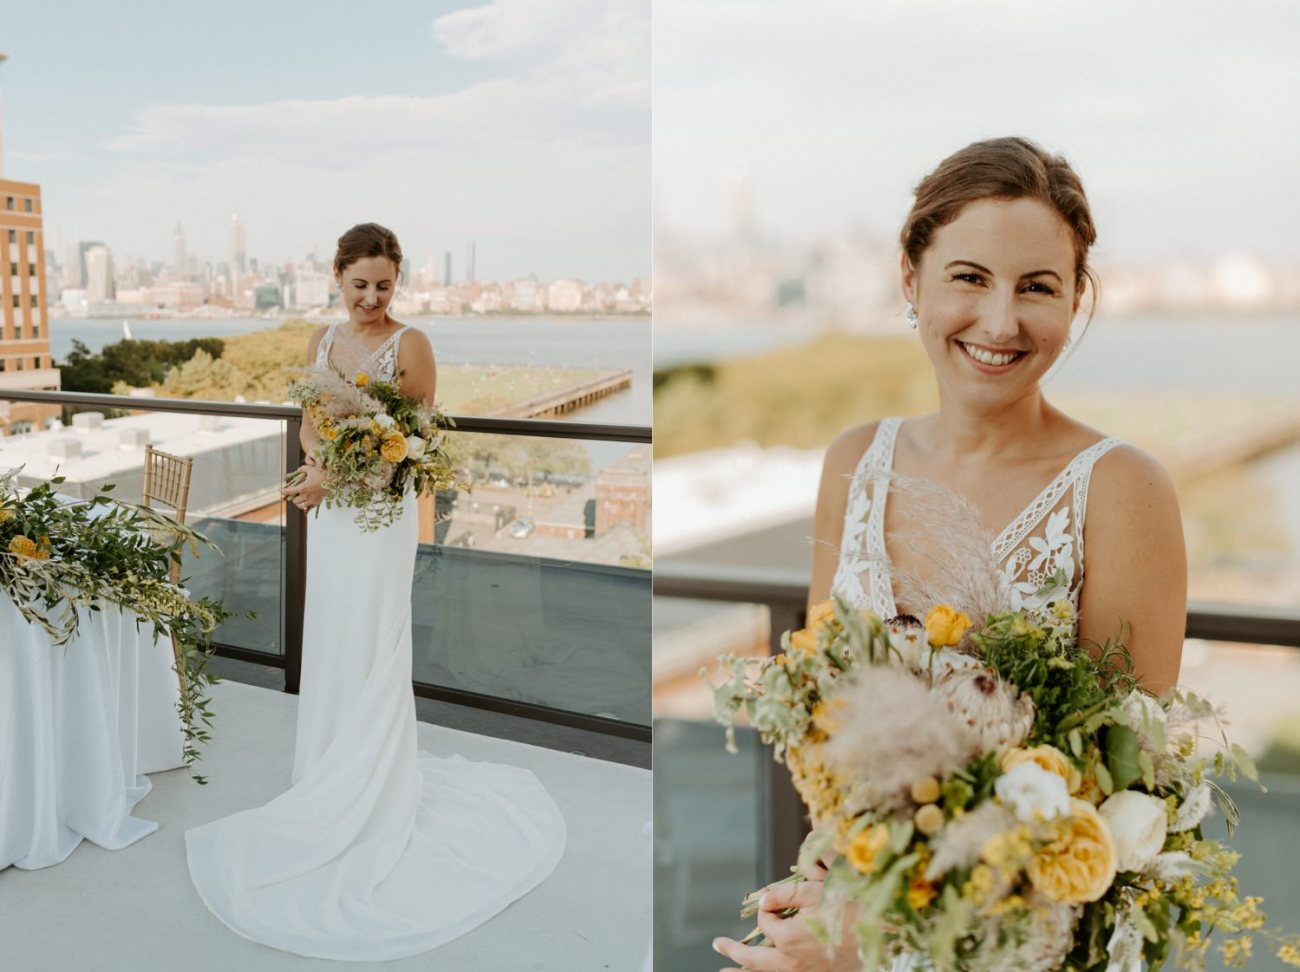 Antique Loft Hoboken Wedding New Jersey Wedding Photographer Anais Possamai Photography 054